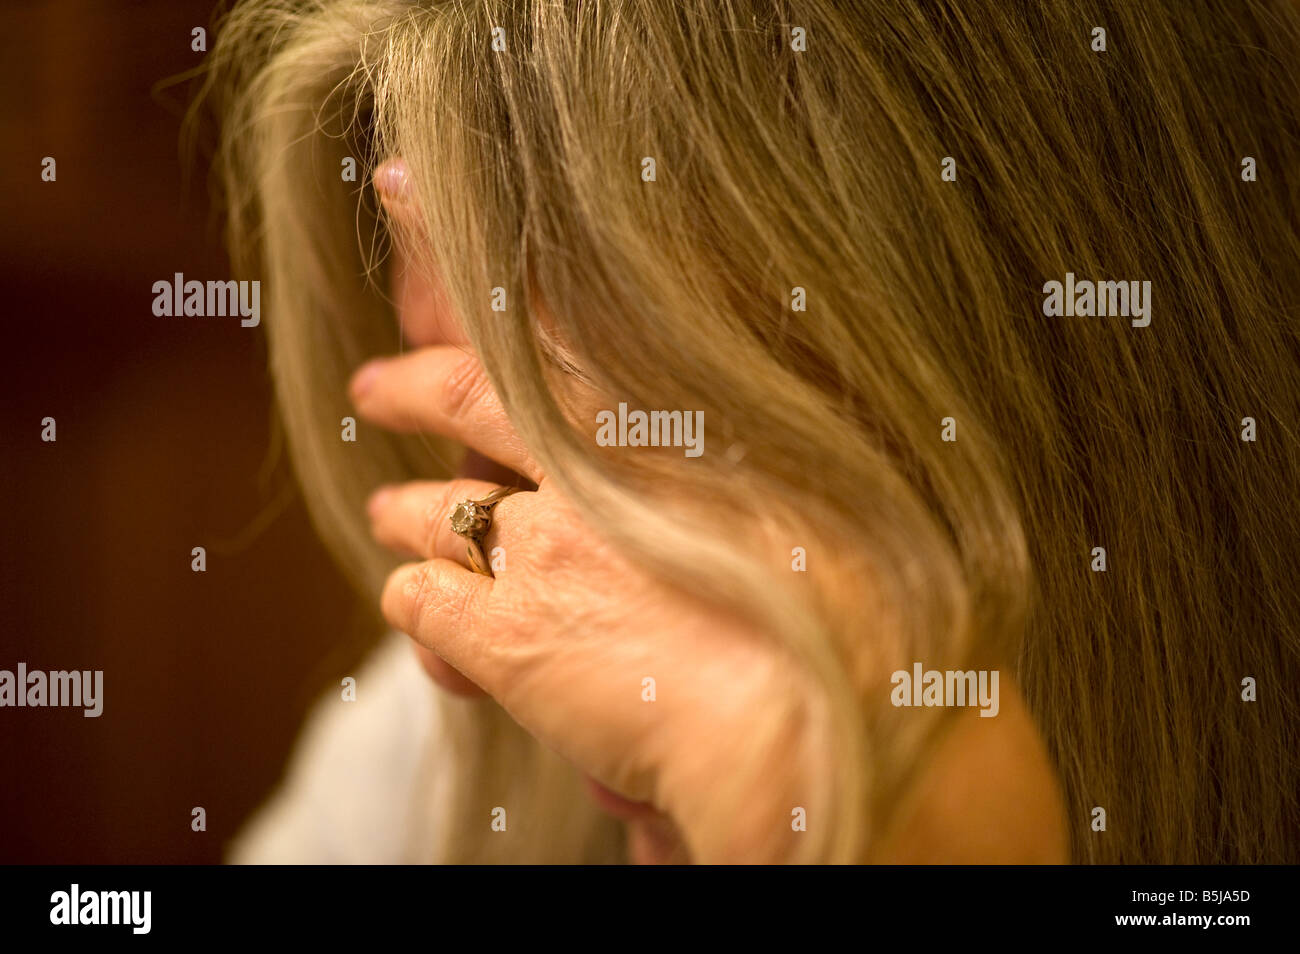 Depression A Depressed Woman in a restrictive focus image additionally Migraine or Headache - Stock Image